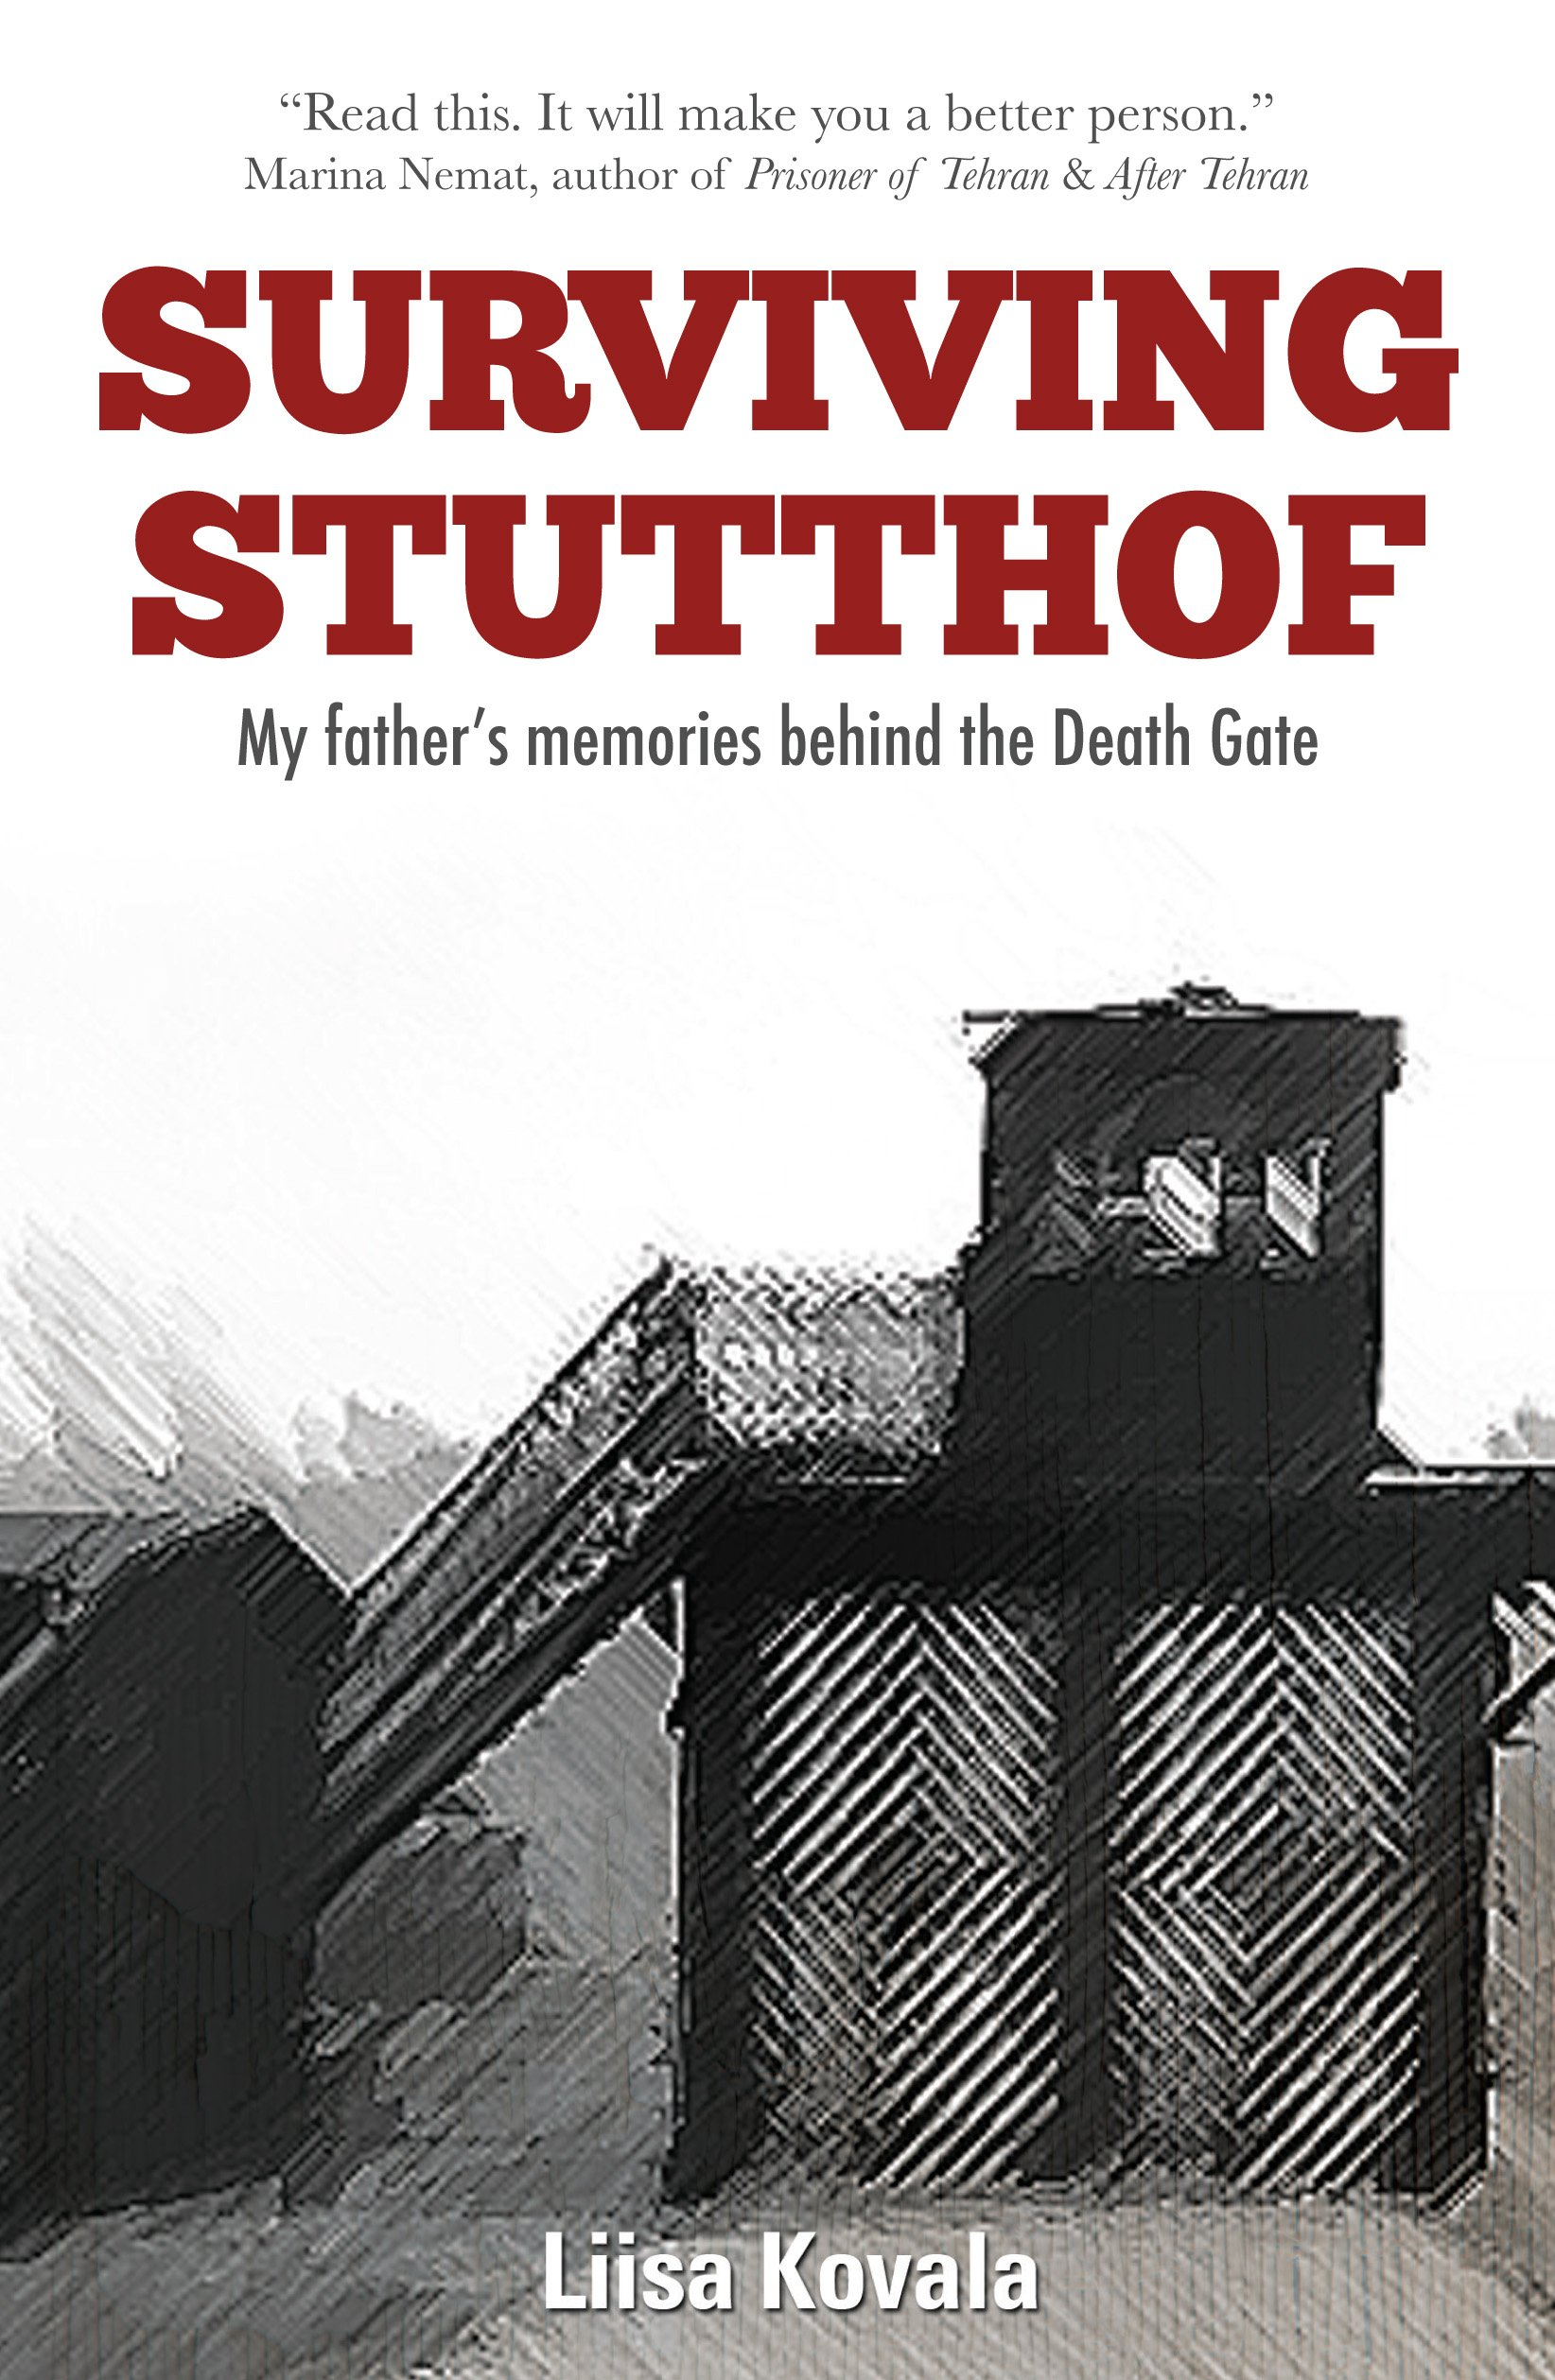 Surviving Stutthof: My Father's Memories Behind the Death Gate pdf